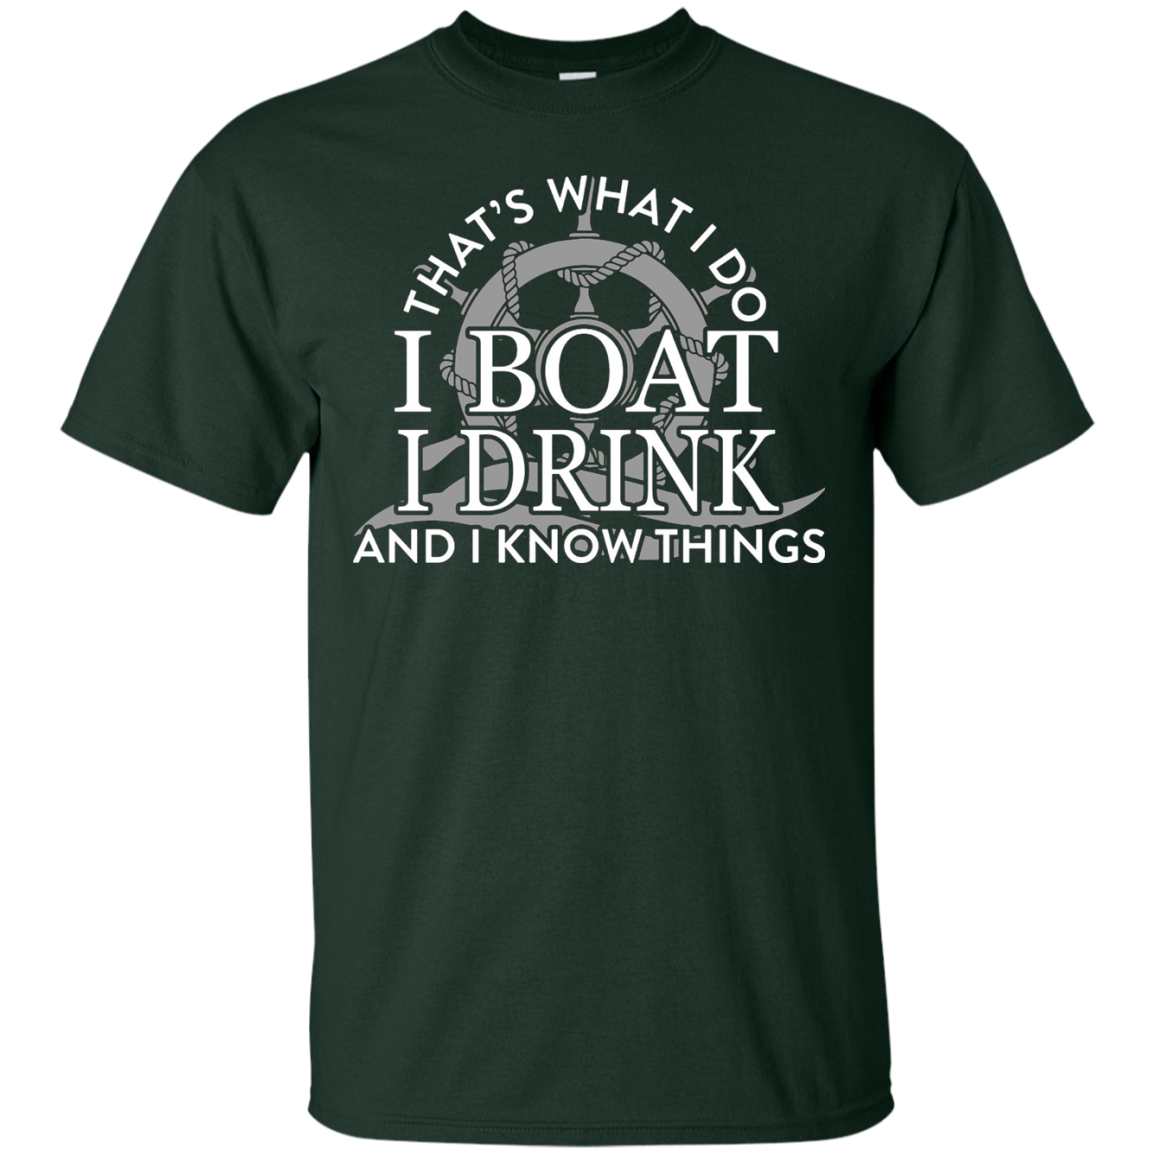 That's What I Do I Boat I Drink And I Know Things T-shirt - T-Shirt